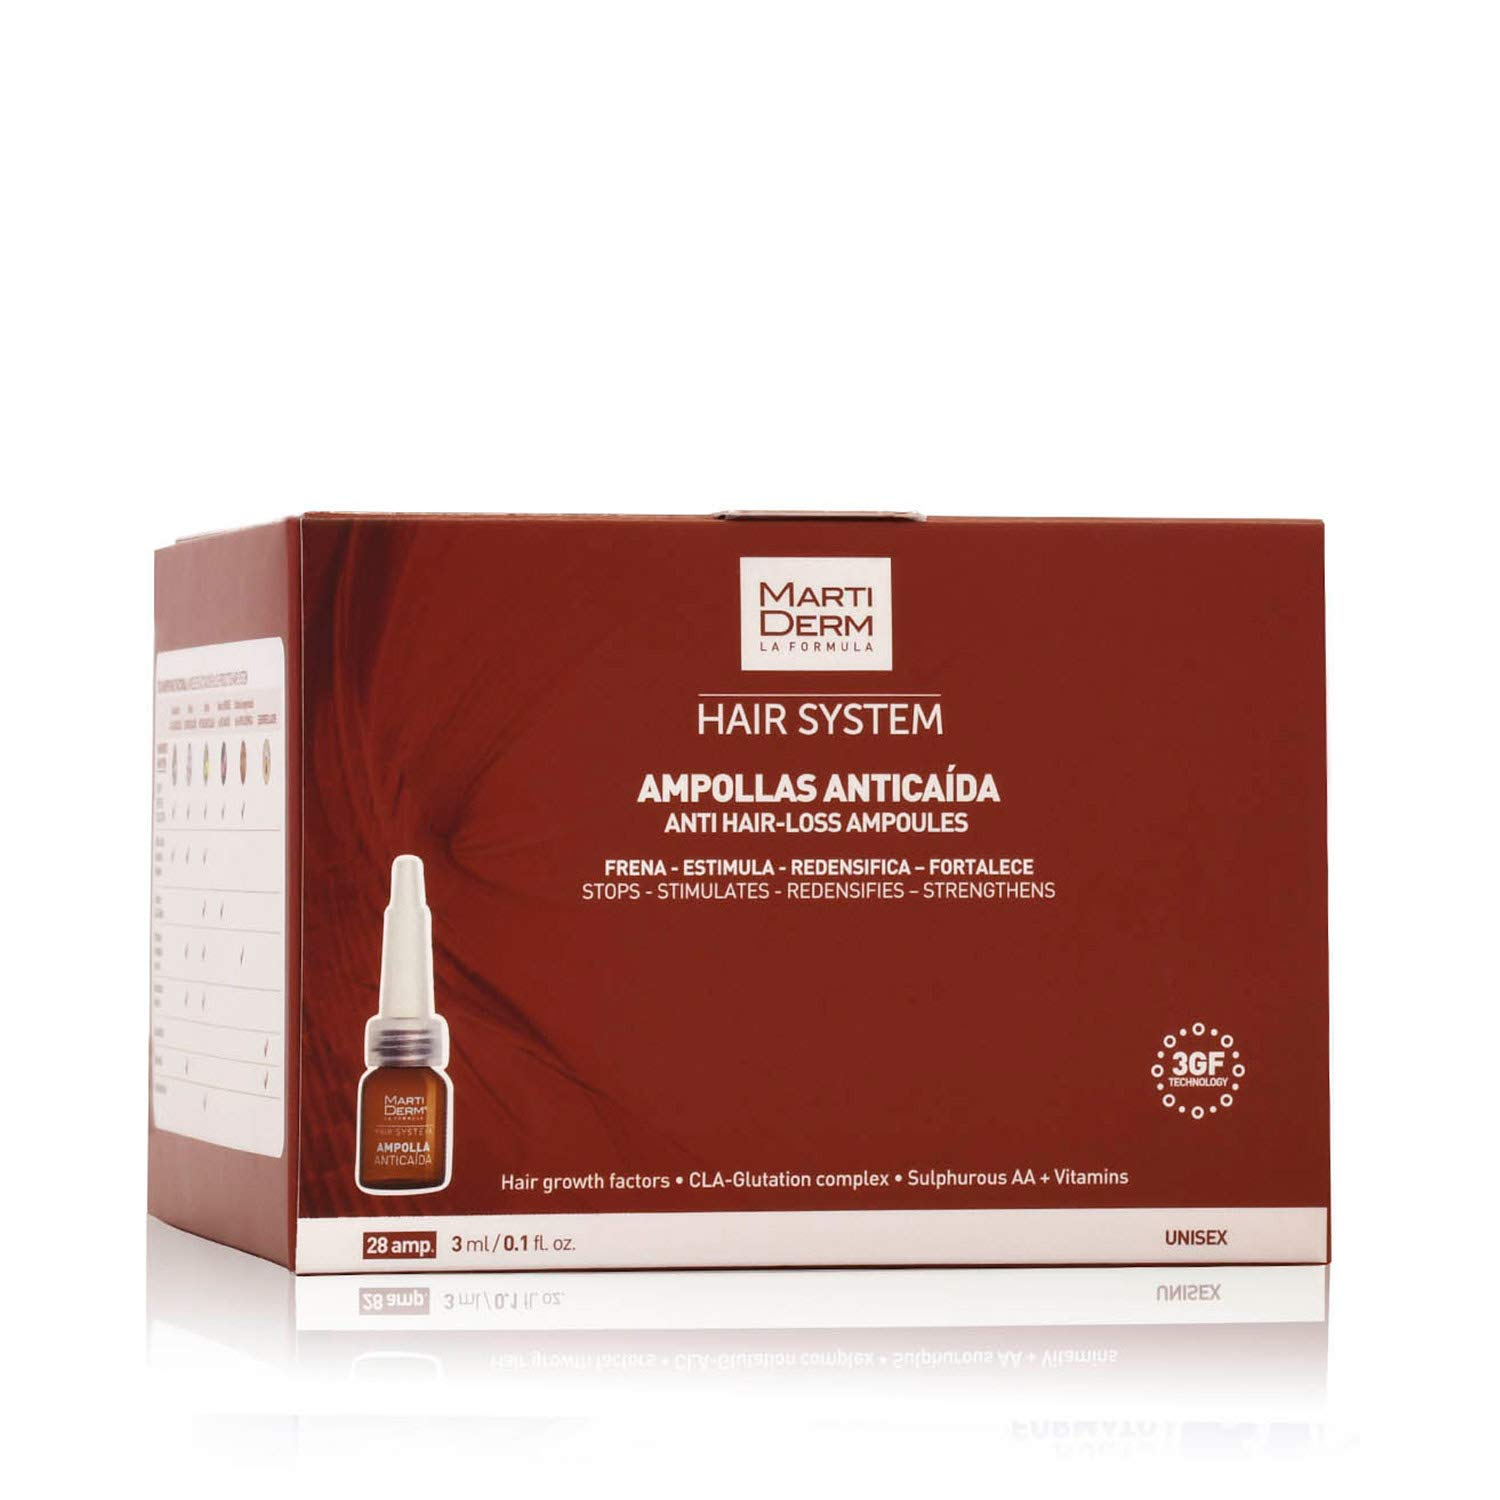 Martiderm S.L. – 28 Ampoules Anti-Loss Hair System Martiderm